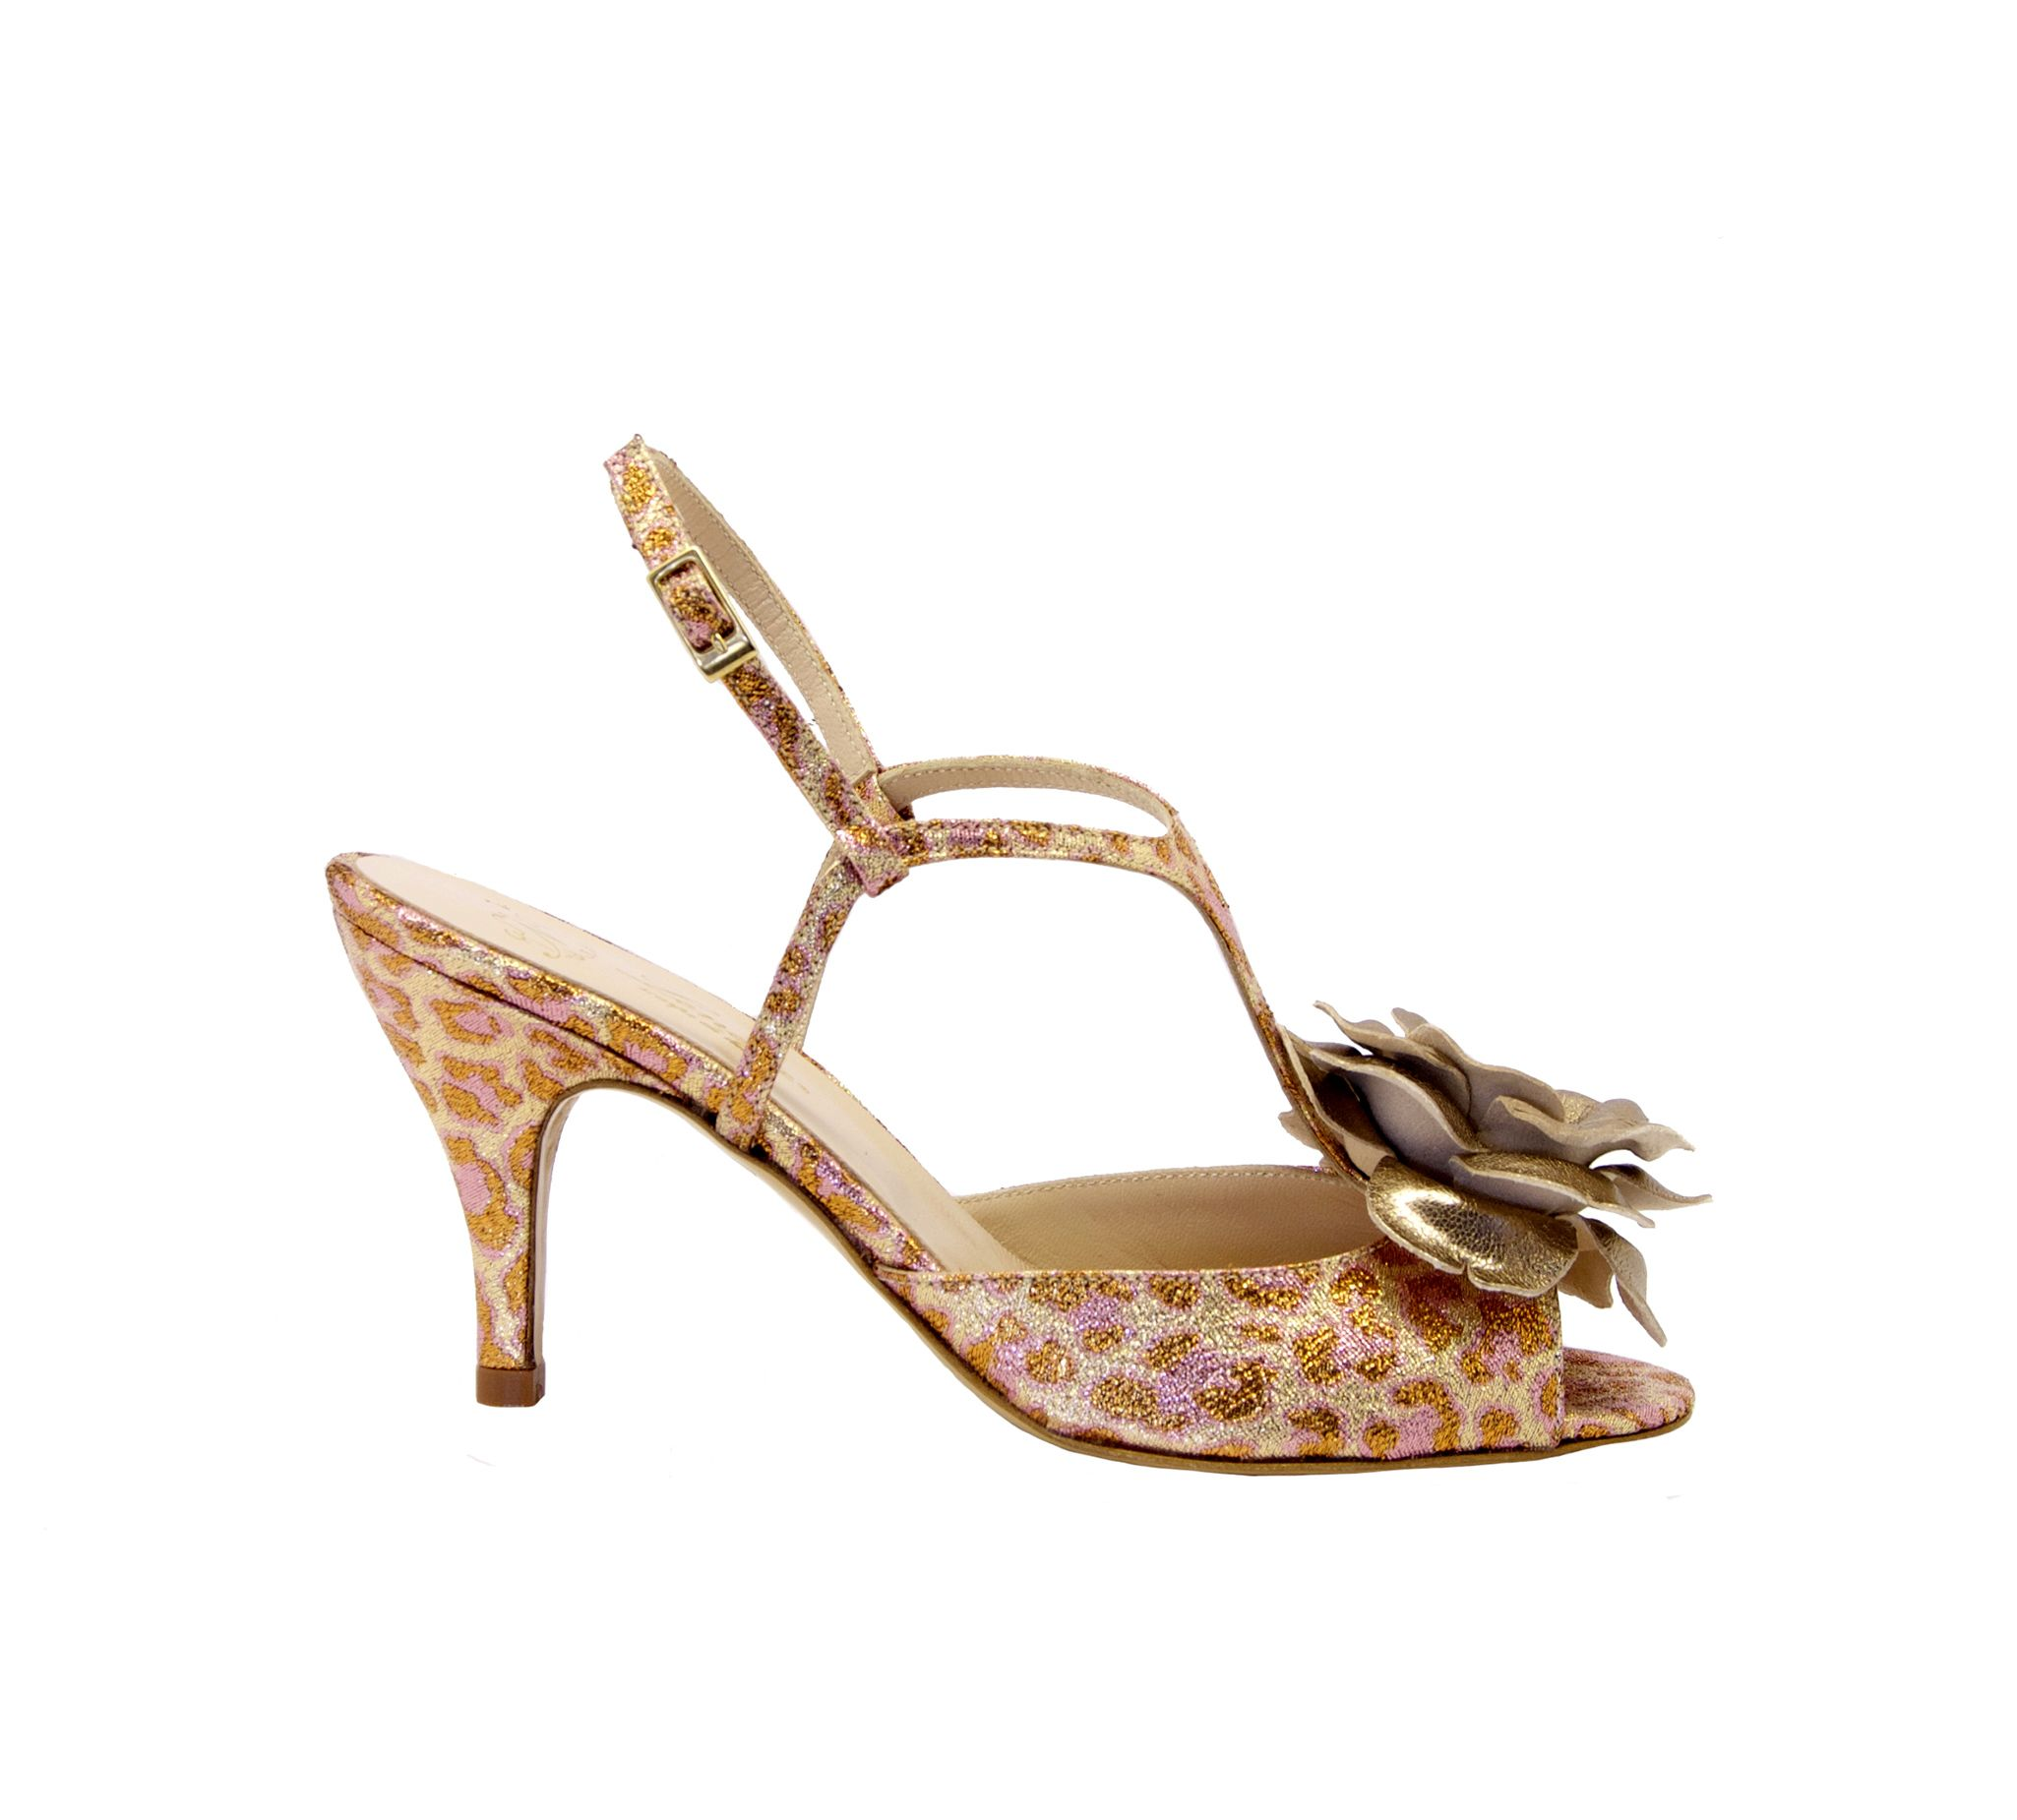 Lenora LENORA WOMEN'S SAMBALEOCIPRIA PINK LEATHER SANDALS